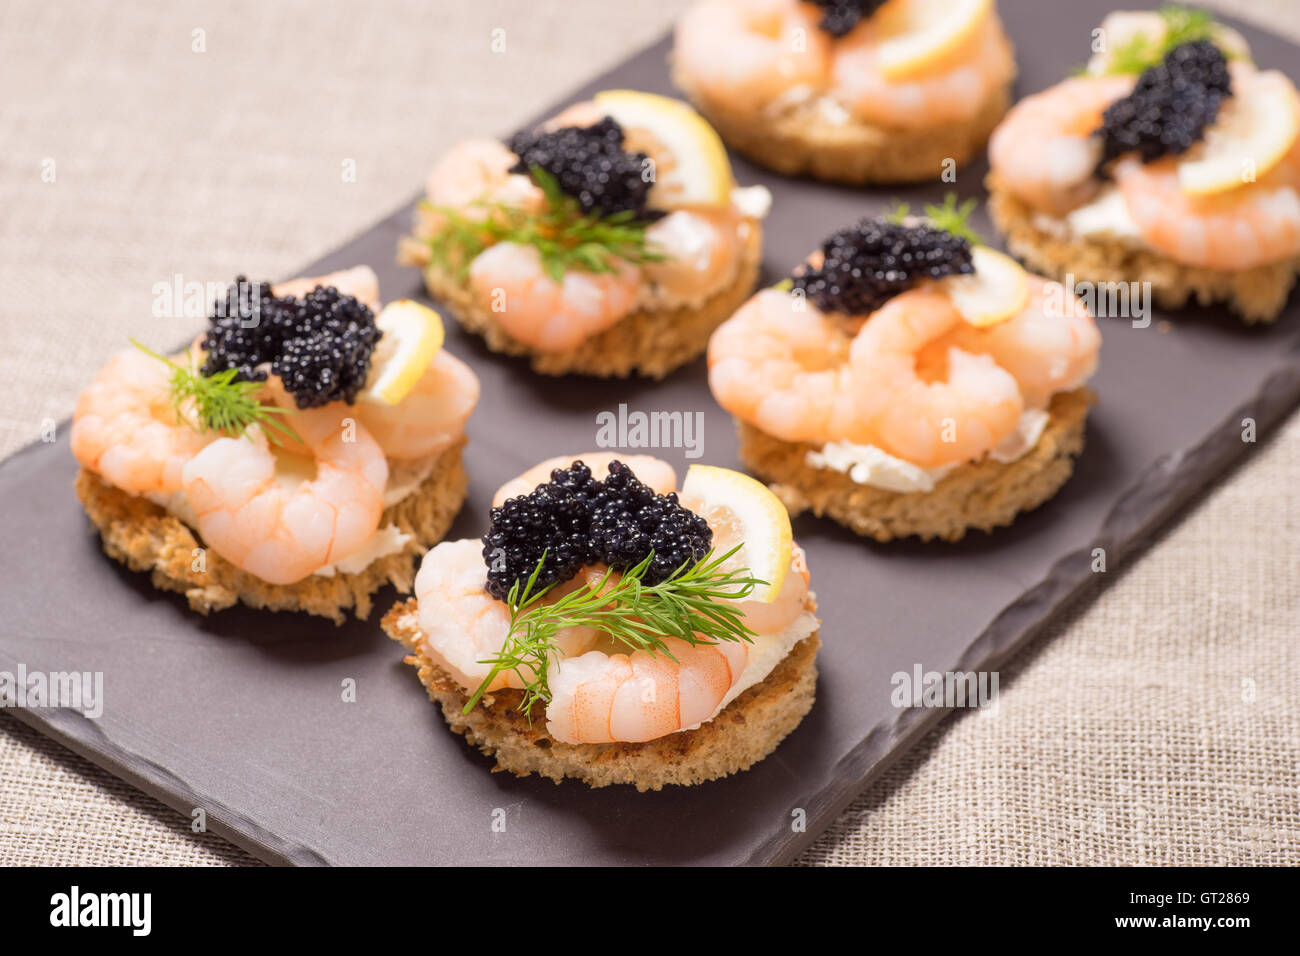 Shrimp Appetizer served on toasted bread and served on a slate plate - Stock Image